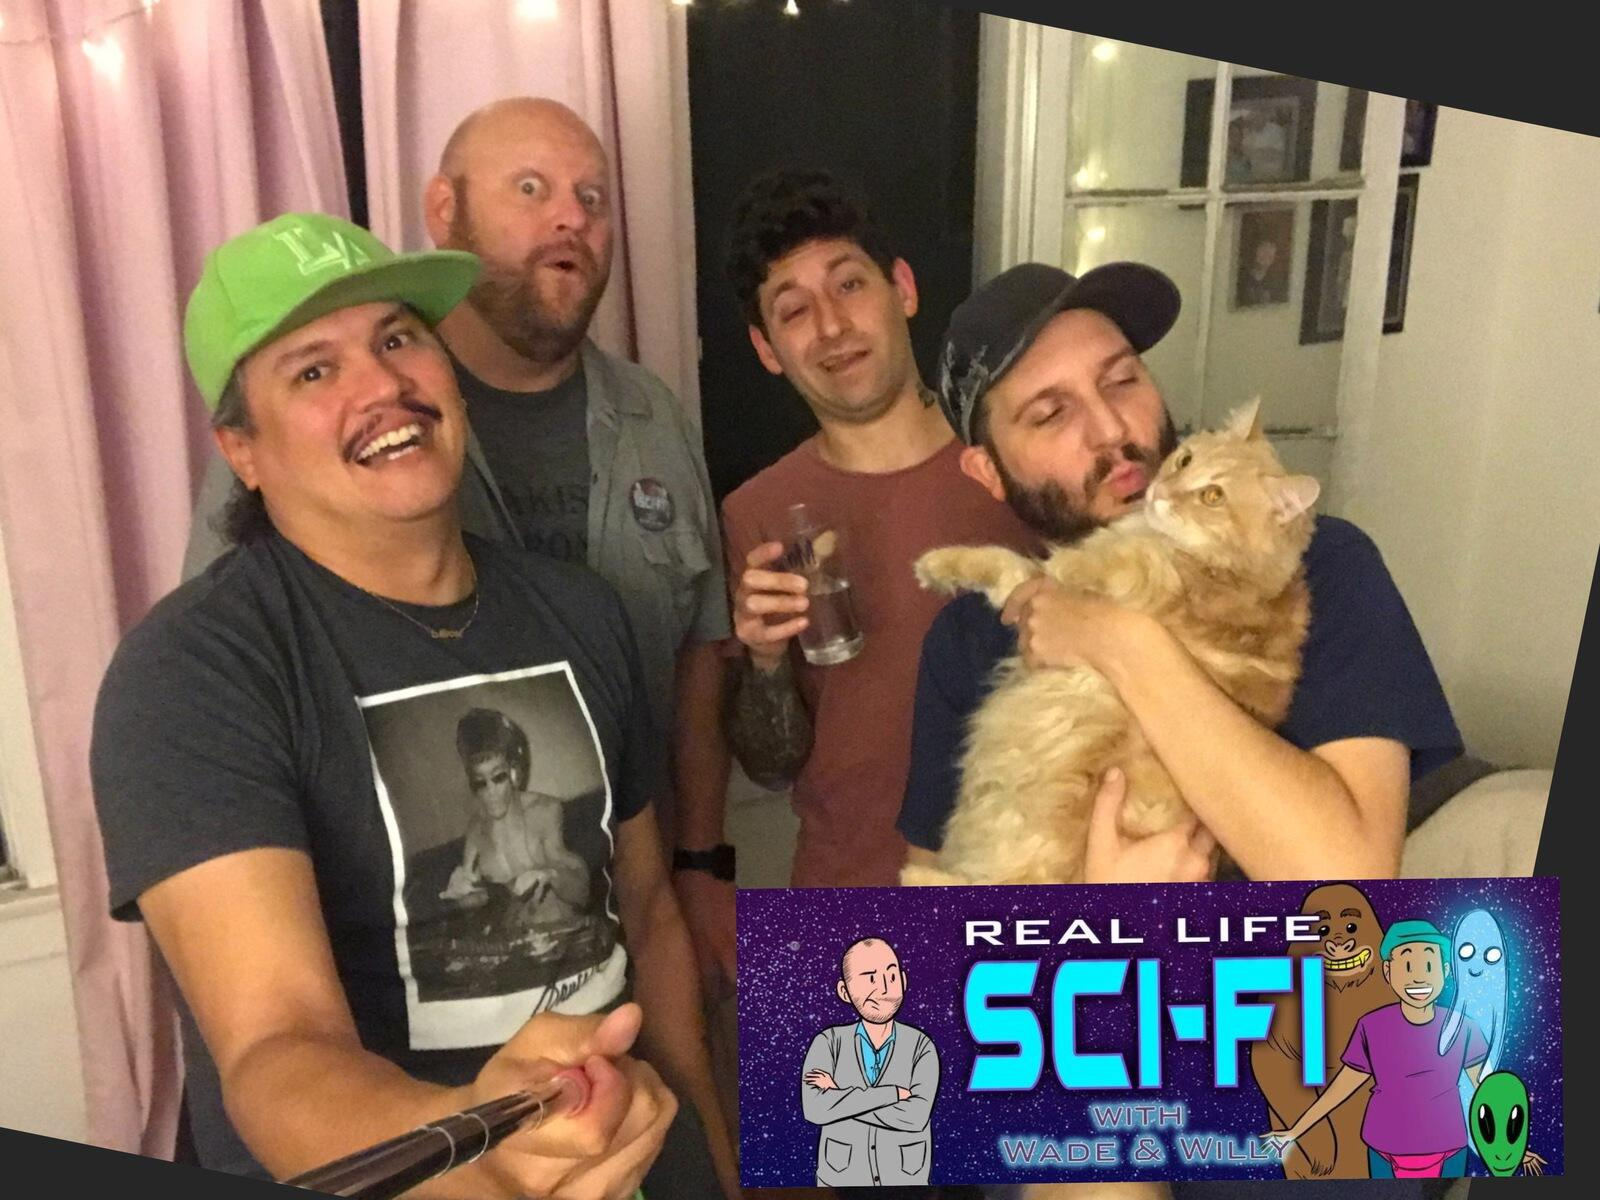 154: If Aliens Were Trying to Communicate with us Would we Even be Able to Identify it? With Joe Trohman and Spencer Frame